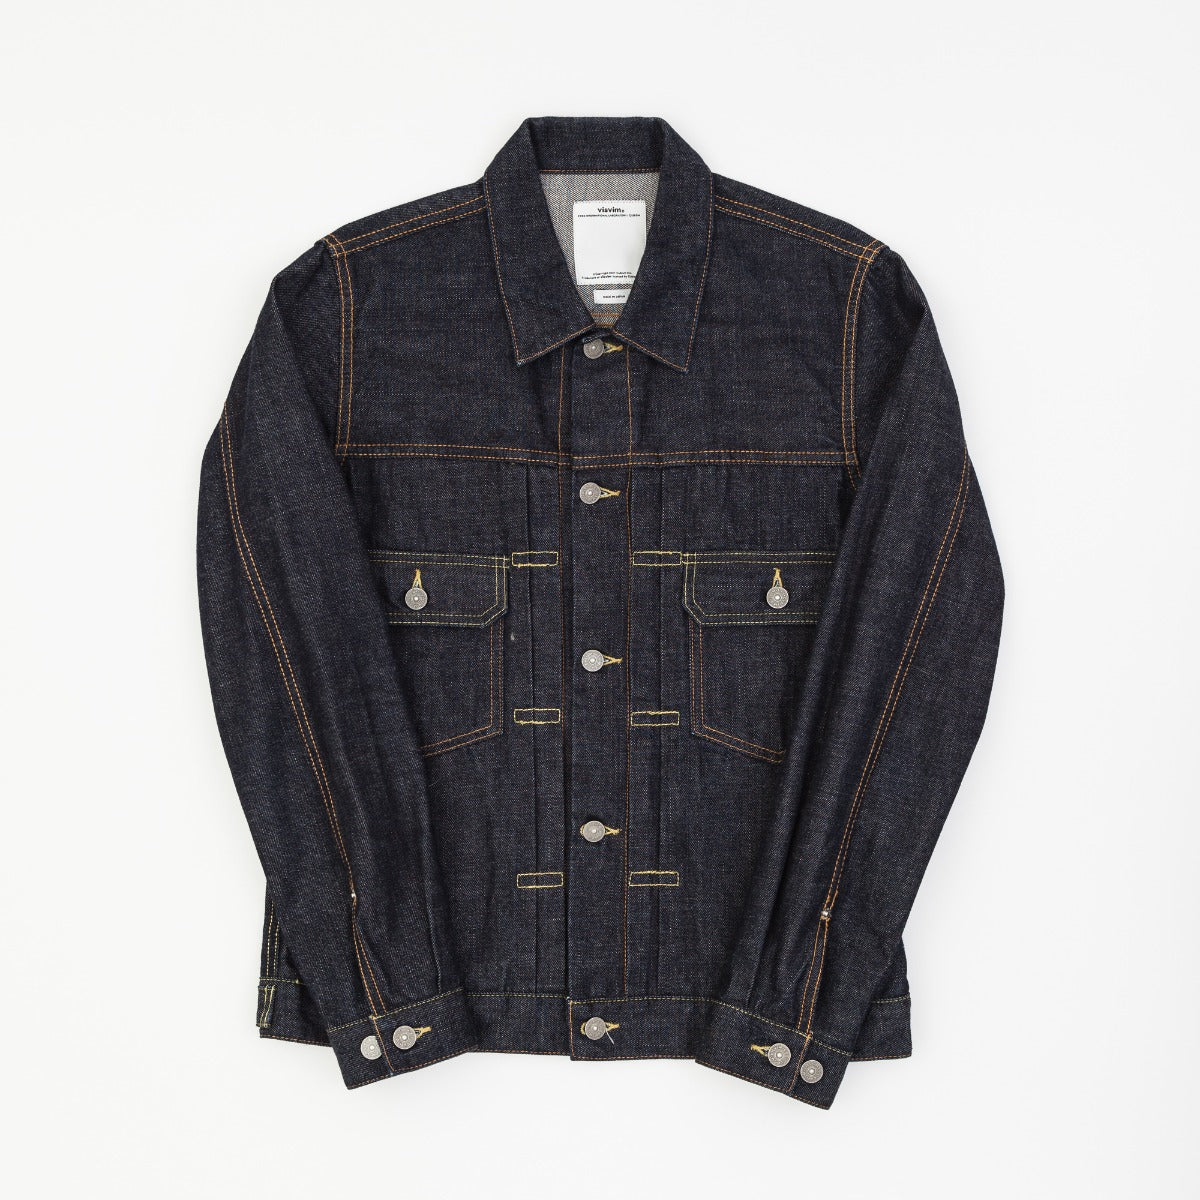 Visvim Social Sculpture 101 Jacket